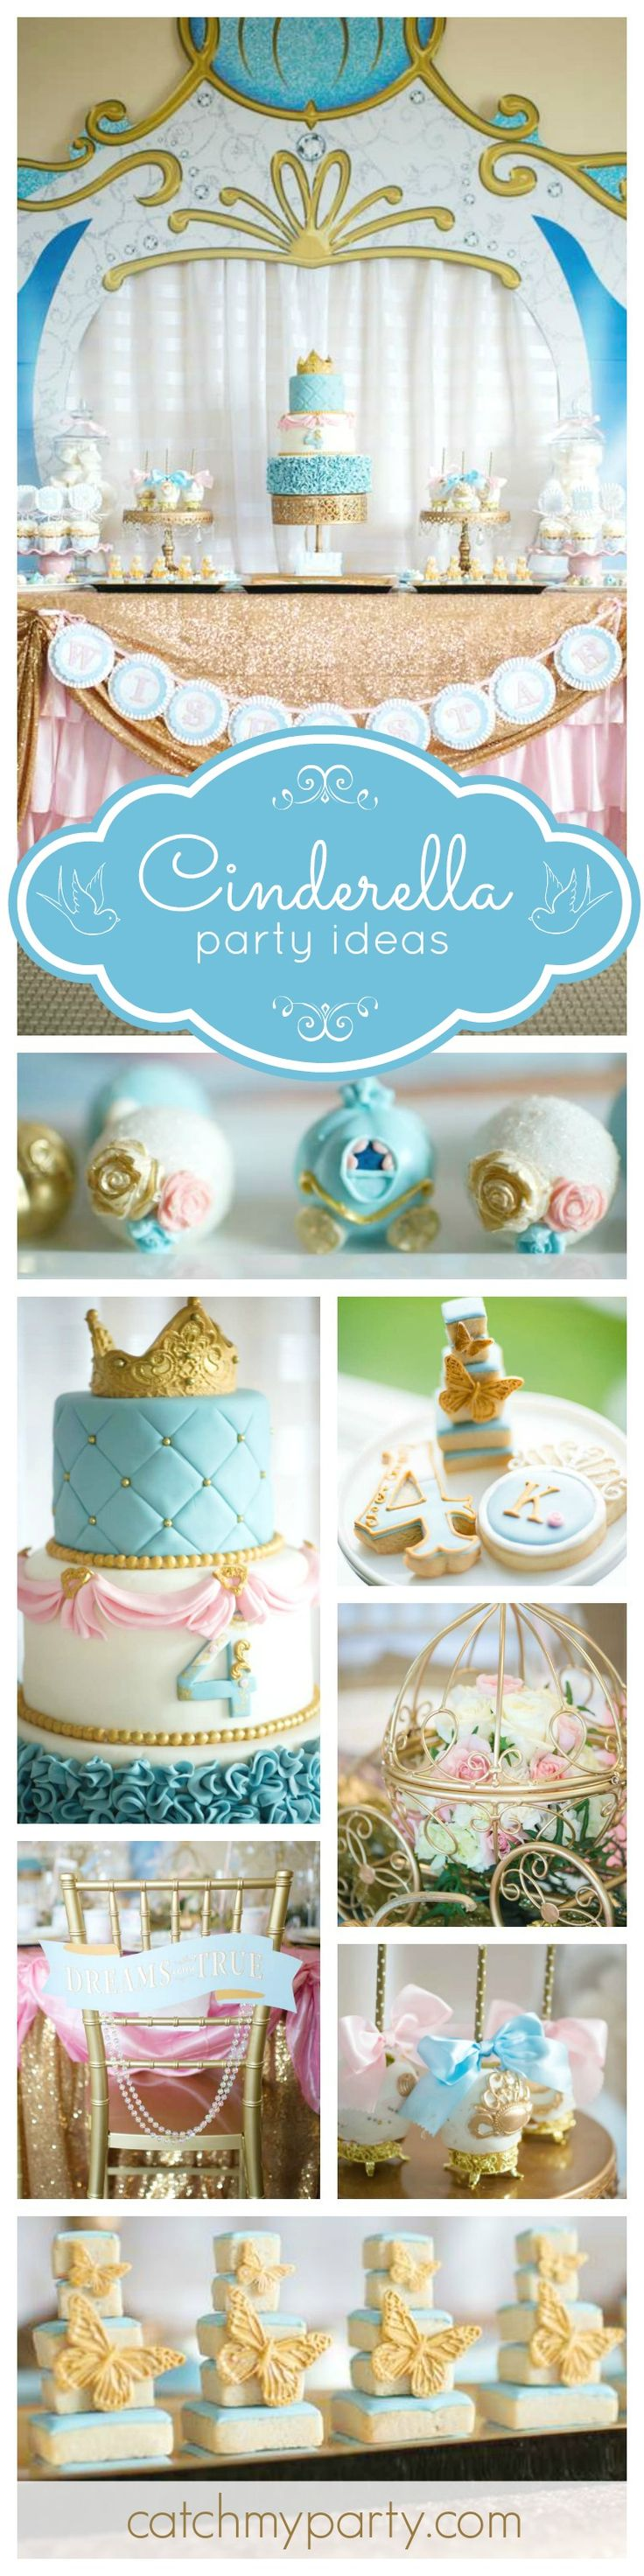 A dream come true Cinderella Birthday party. All the desserts are stunning! The attention to detail is mind blowing! Just look at the ting carriage cake pops! Wow! See more party ideas at CatchMyParty.com